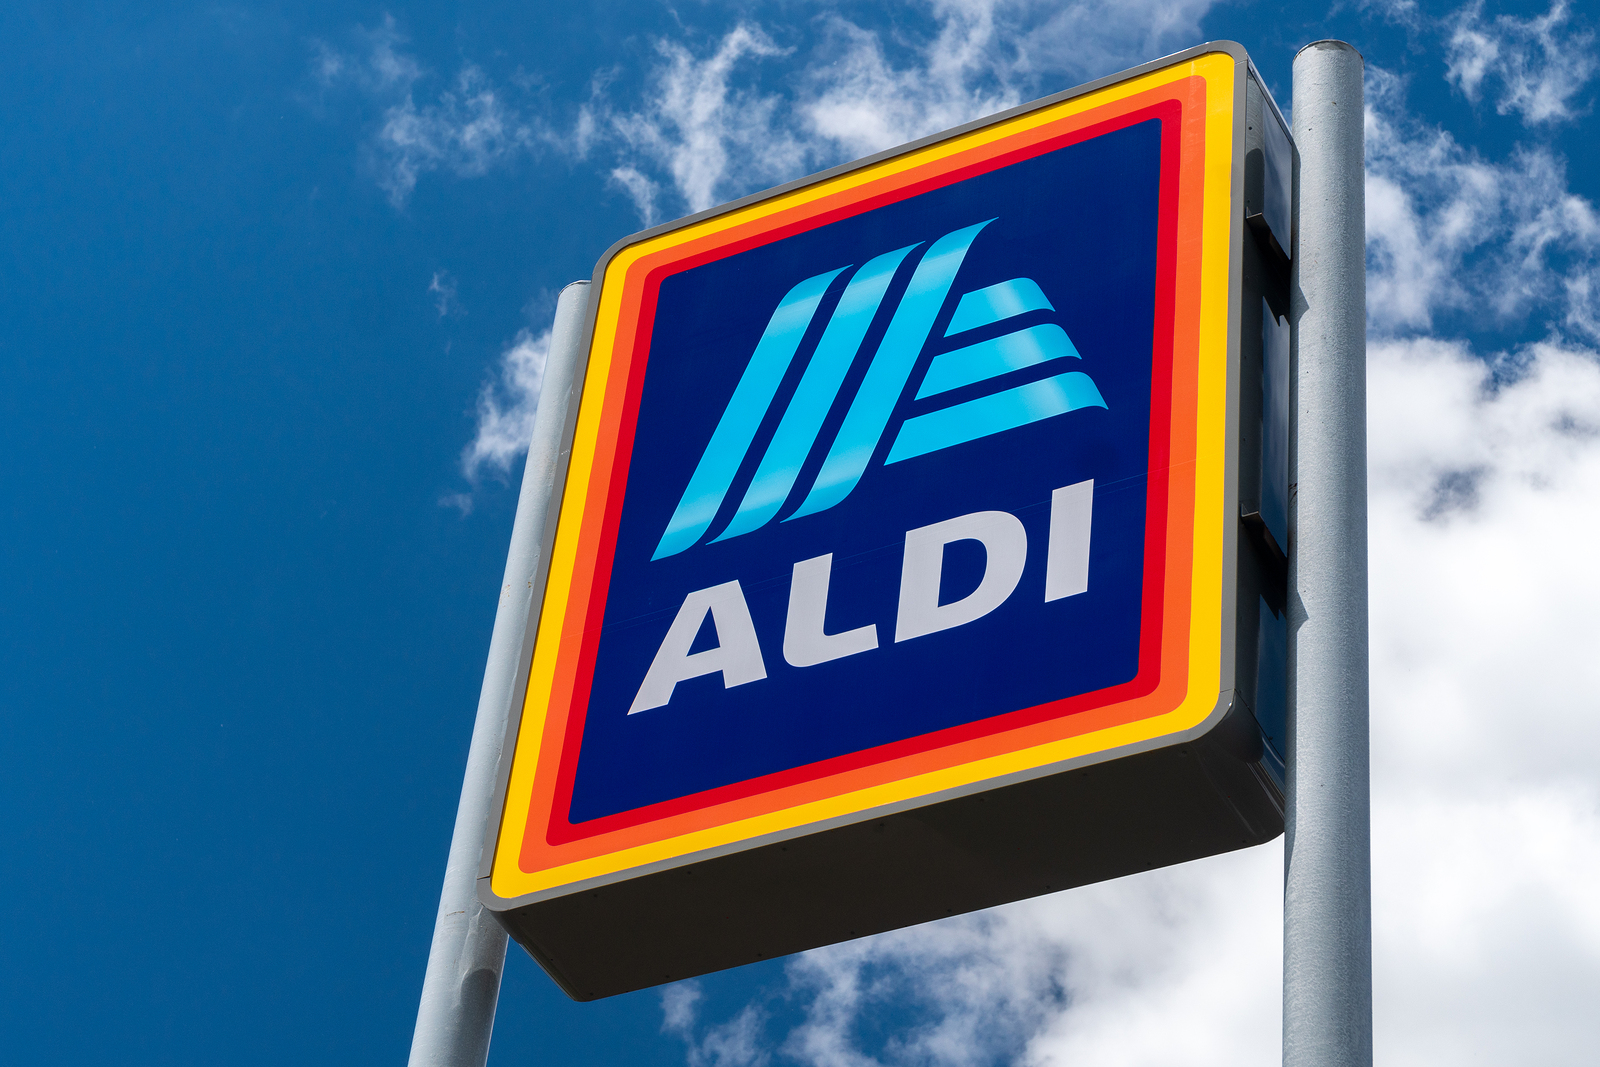 Shopping at Aldi is a good decision or not?